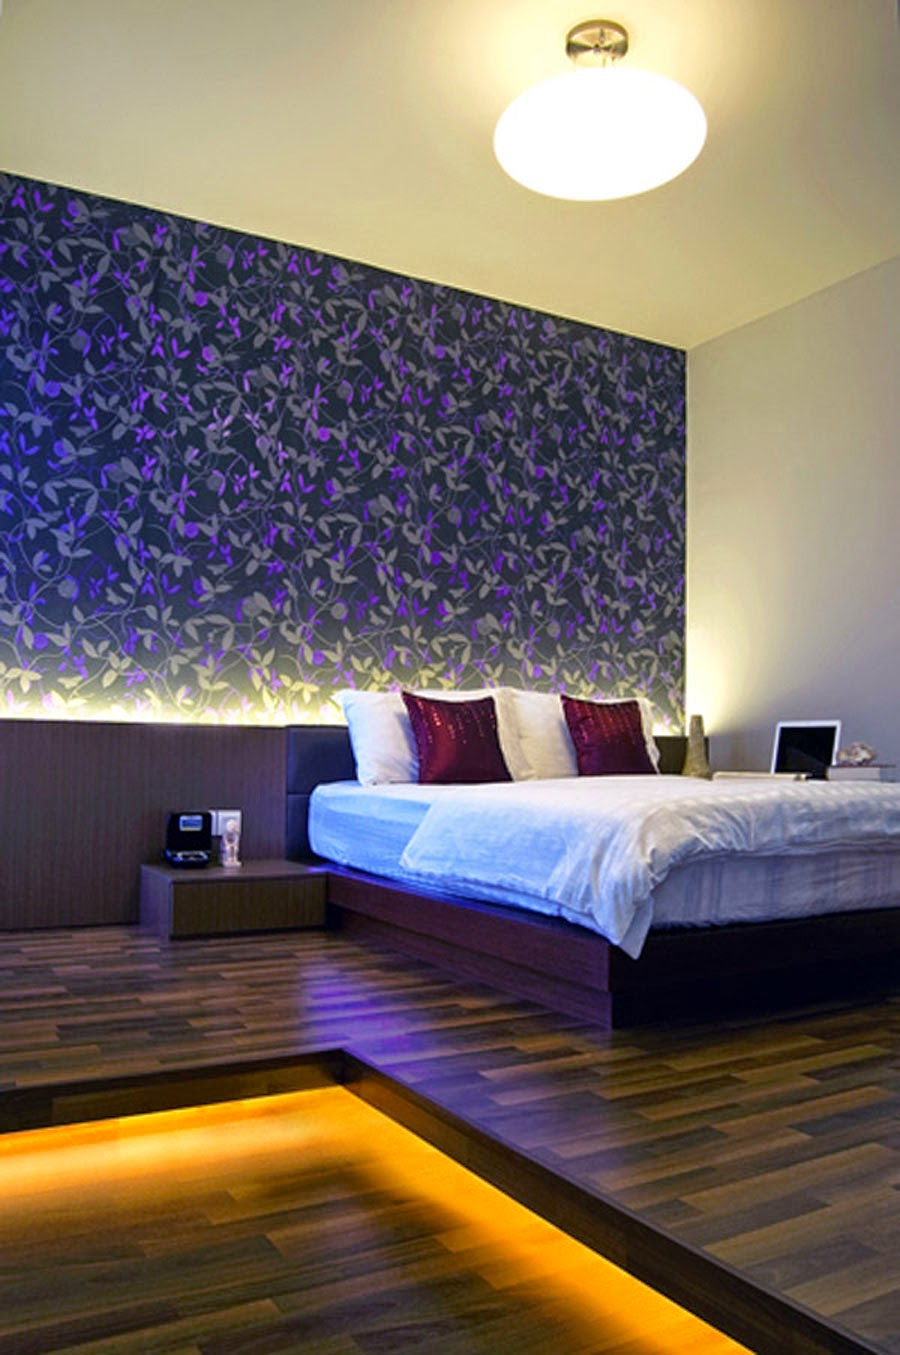 Small bedroom lighting ideas the interior designs - Paint in bedroom with designs ...